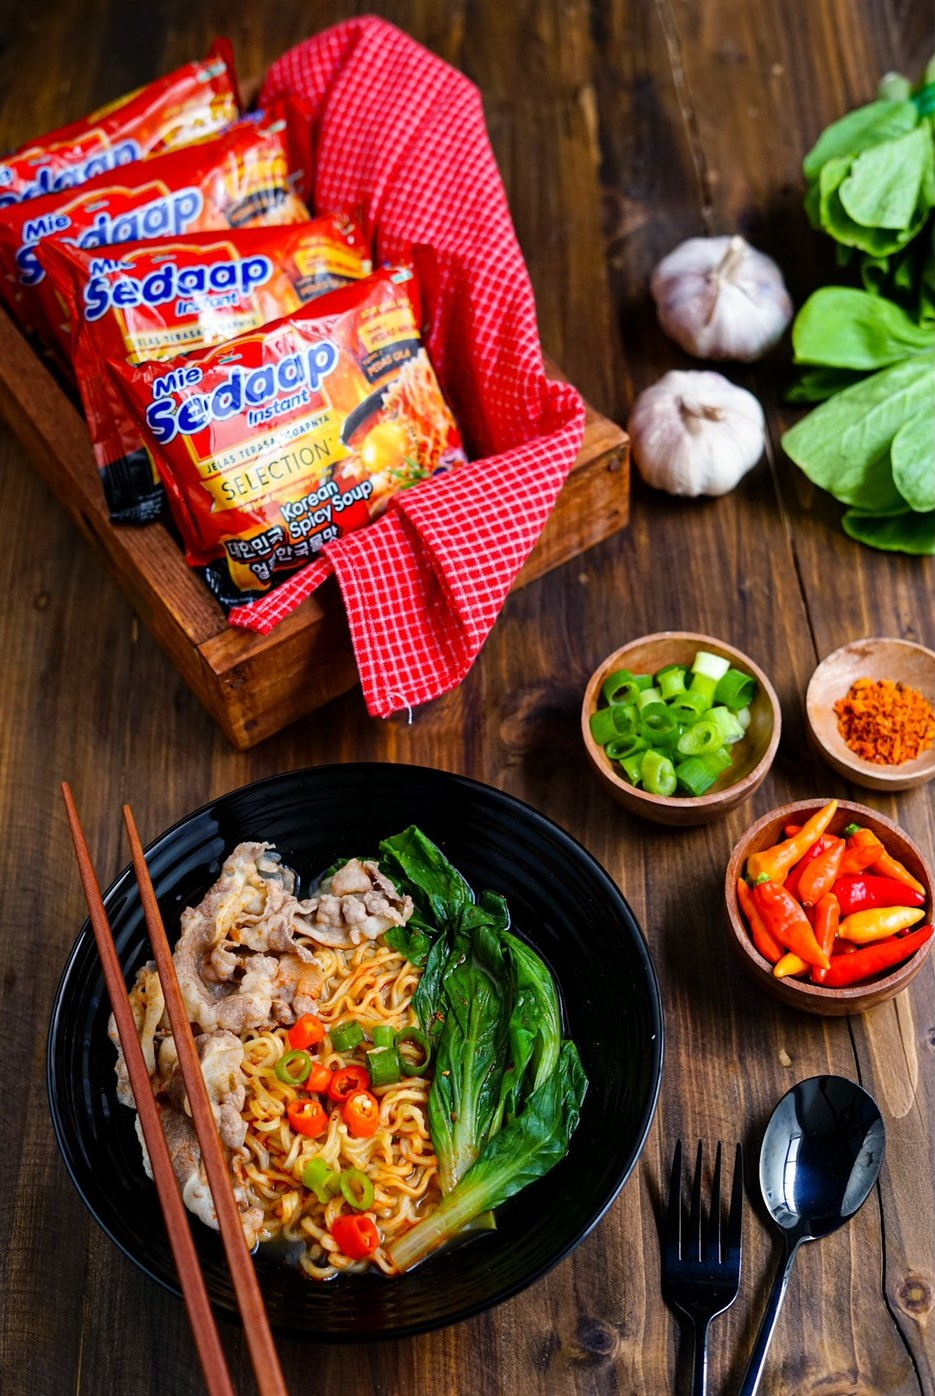 mie sedaap selection korean spicy soup